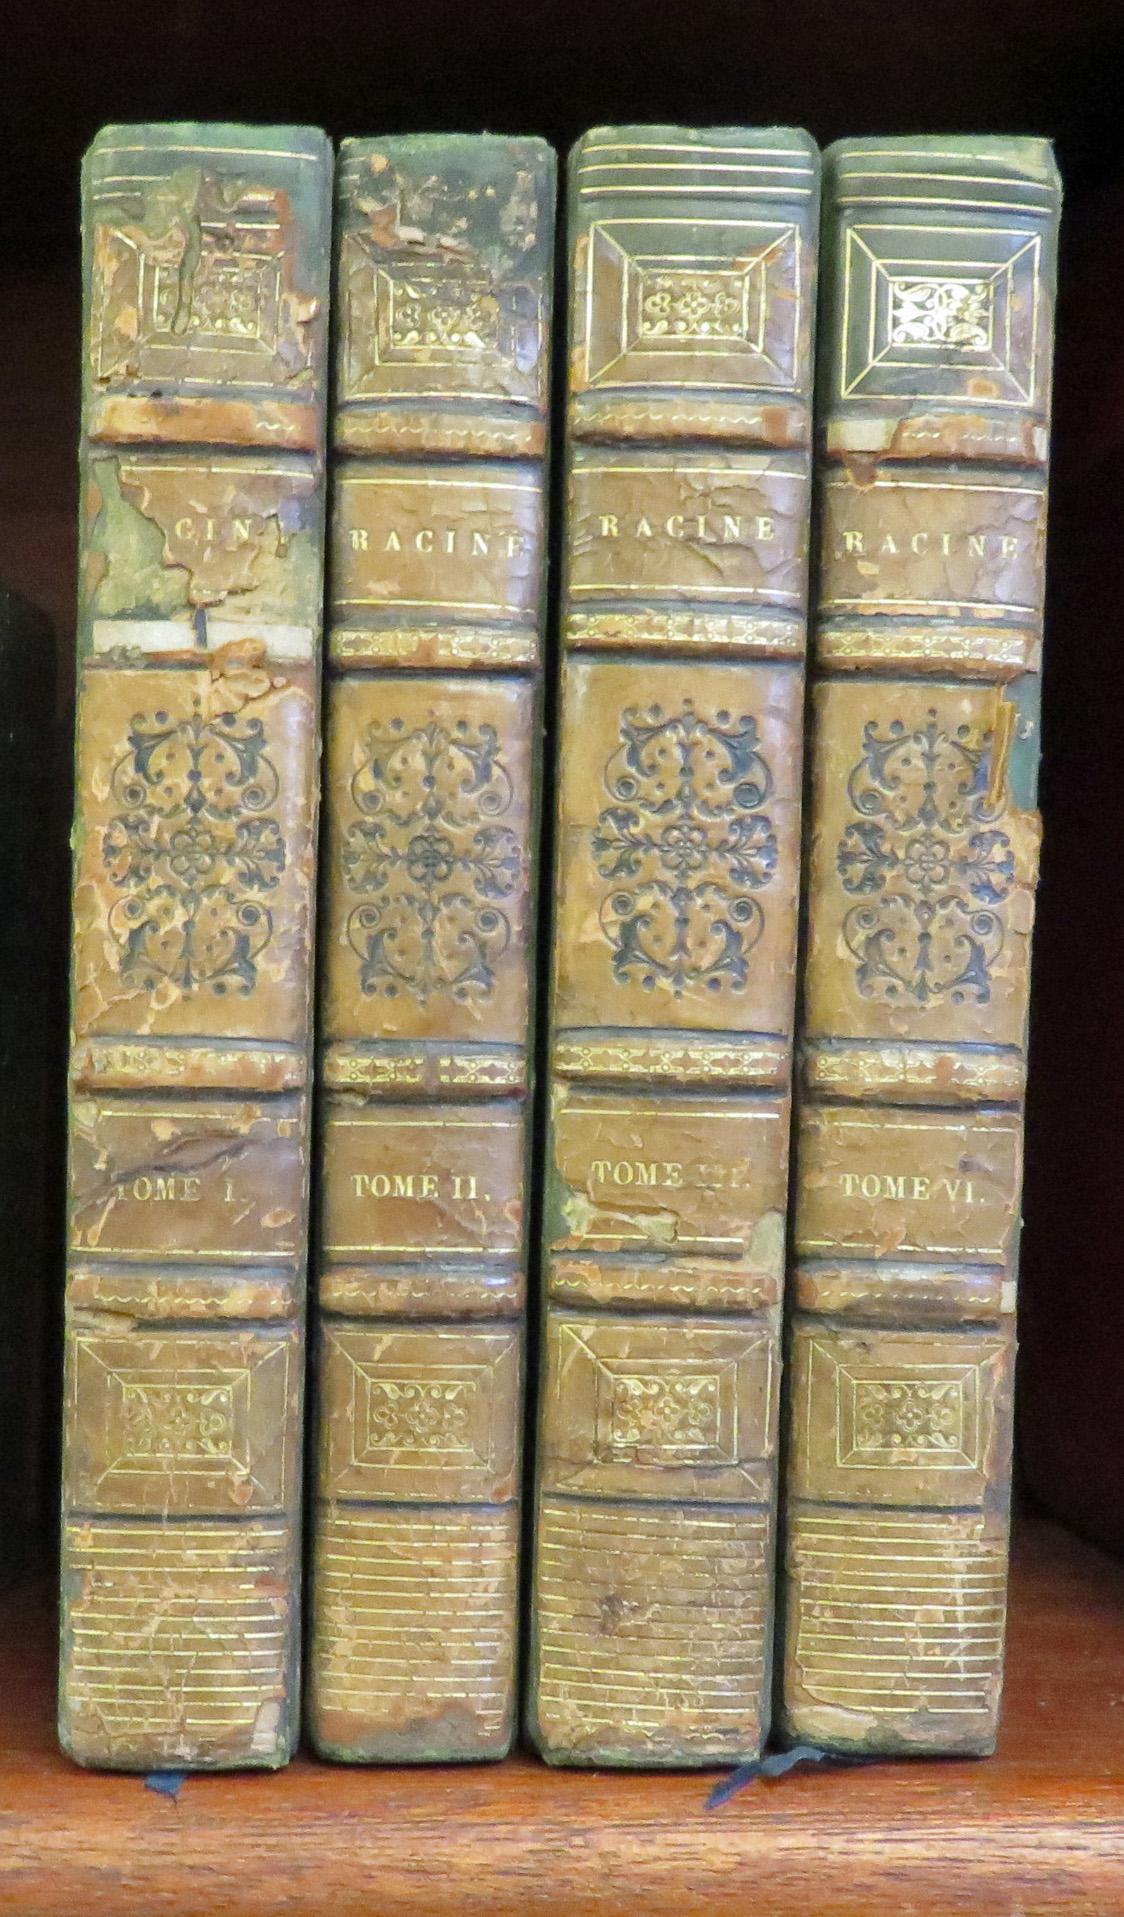 Oeuvres Completes De J Racine Volumes 1-3 and 6